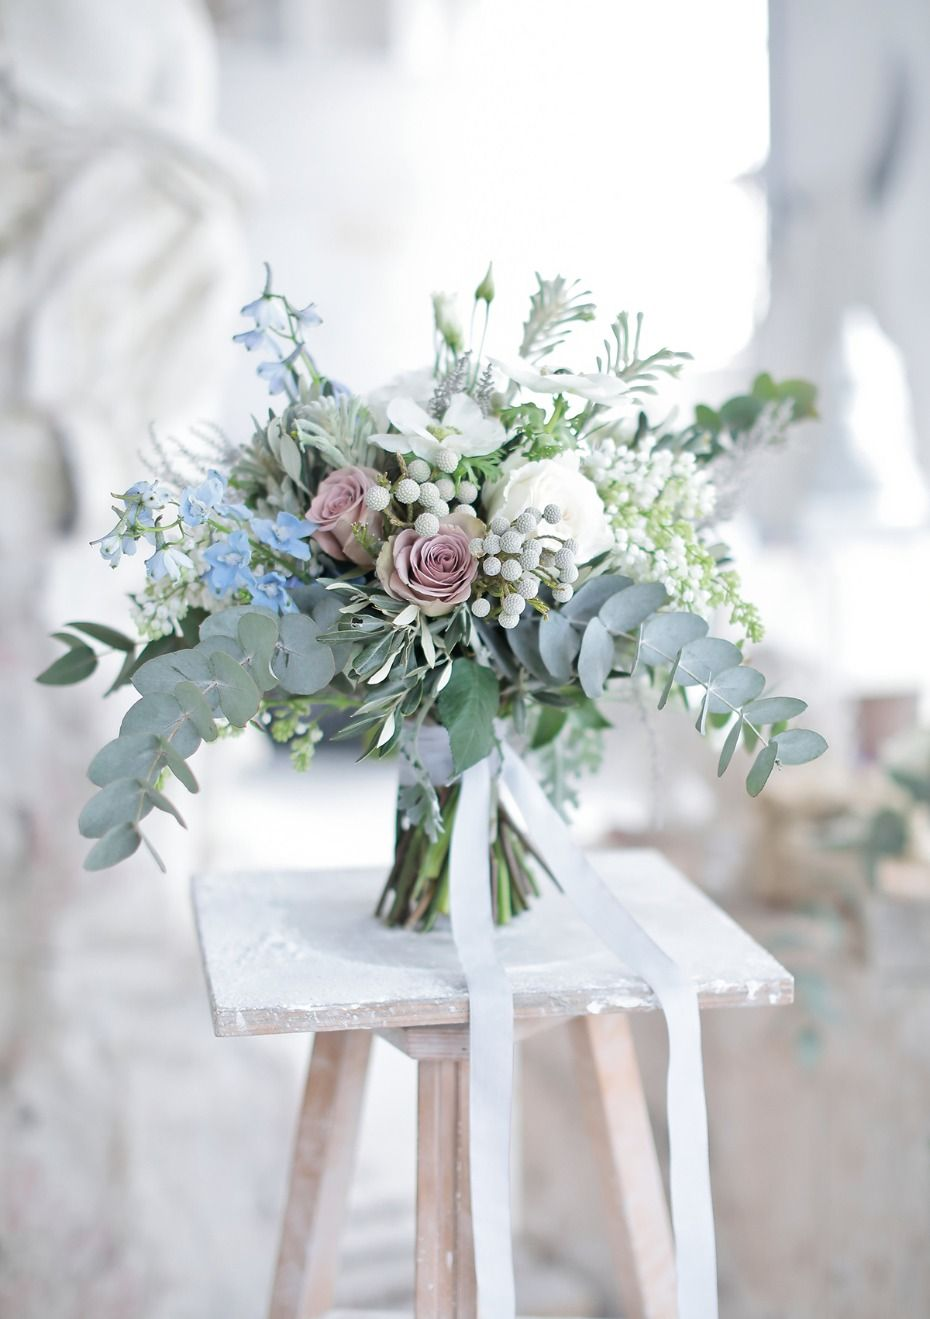 How To Marble Your Wedding Day Wedding Flower Guide Flower